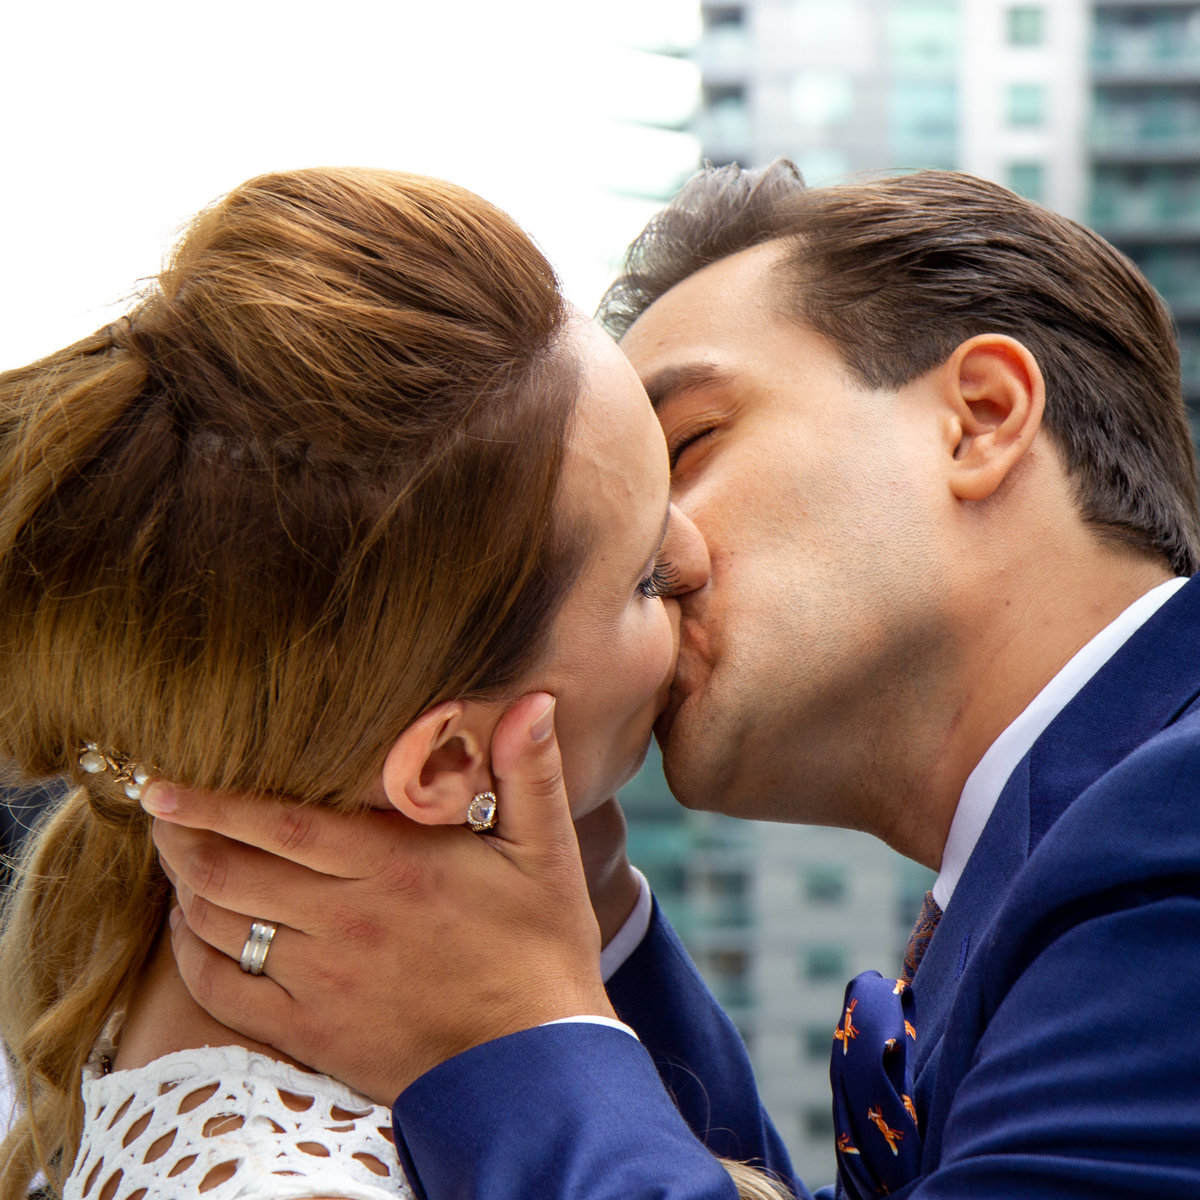 Bride and Groom share their first kiss at their Toronto rooftop wedding ceremony location